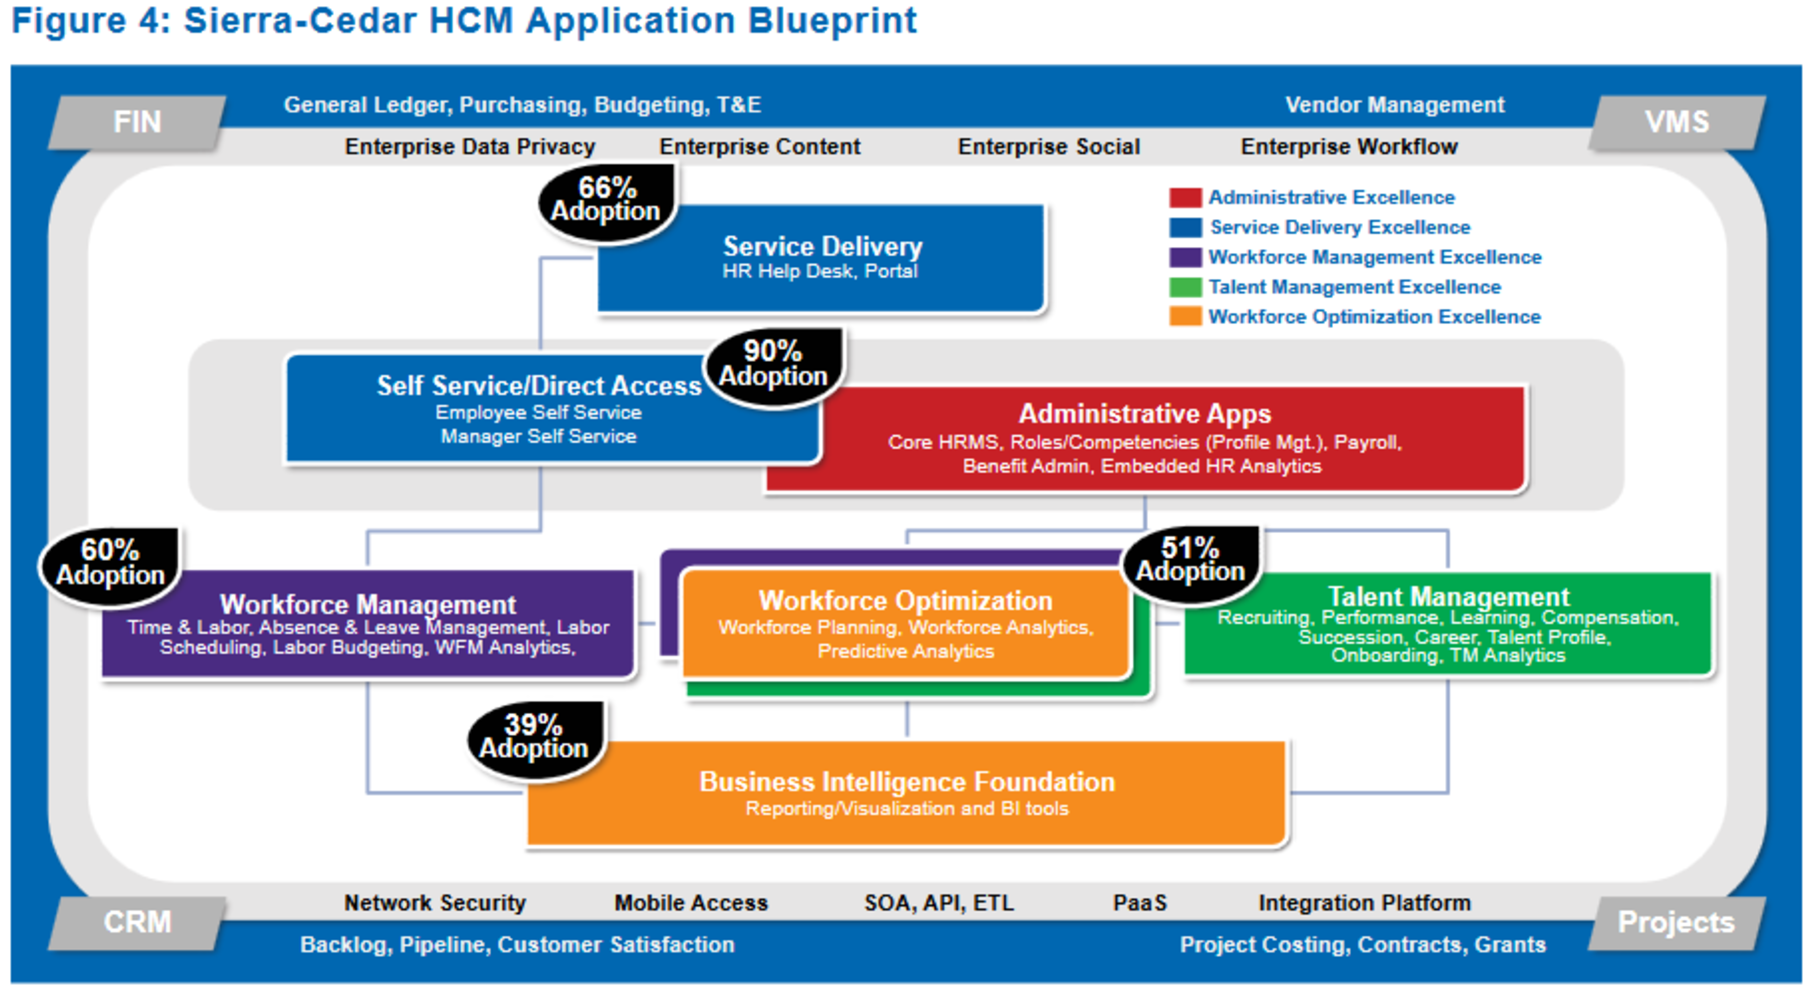 Bypass navigating the hcm application roadmap go directly to graphic representation of the sierra cedar hcm application blueprint publicscrutiny Gallery